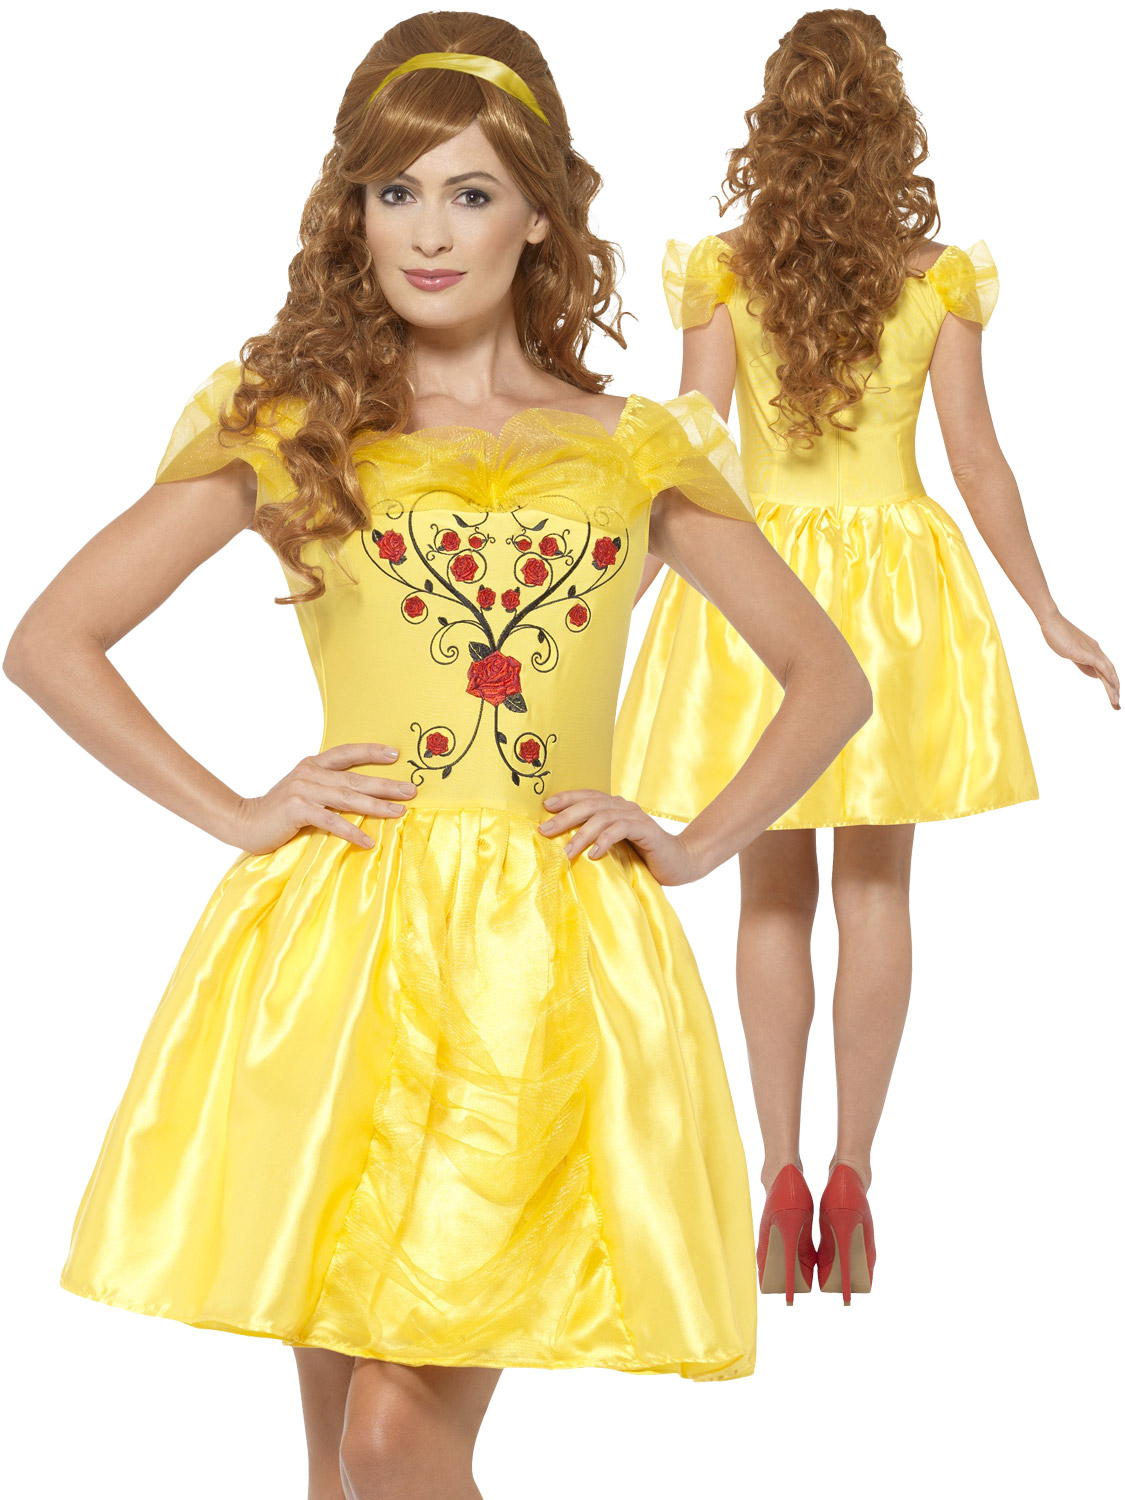 Ladies belle costume adults enchanting beauty and the beast fancy transform yourself into belle from beauty and the beast with this ladies enchanting beauty costume solutioingenieria Gallery